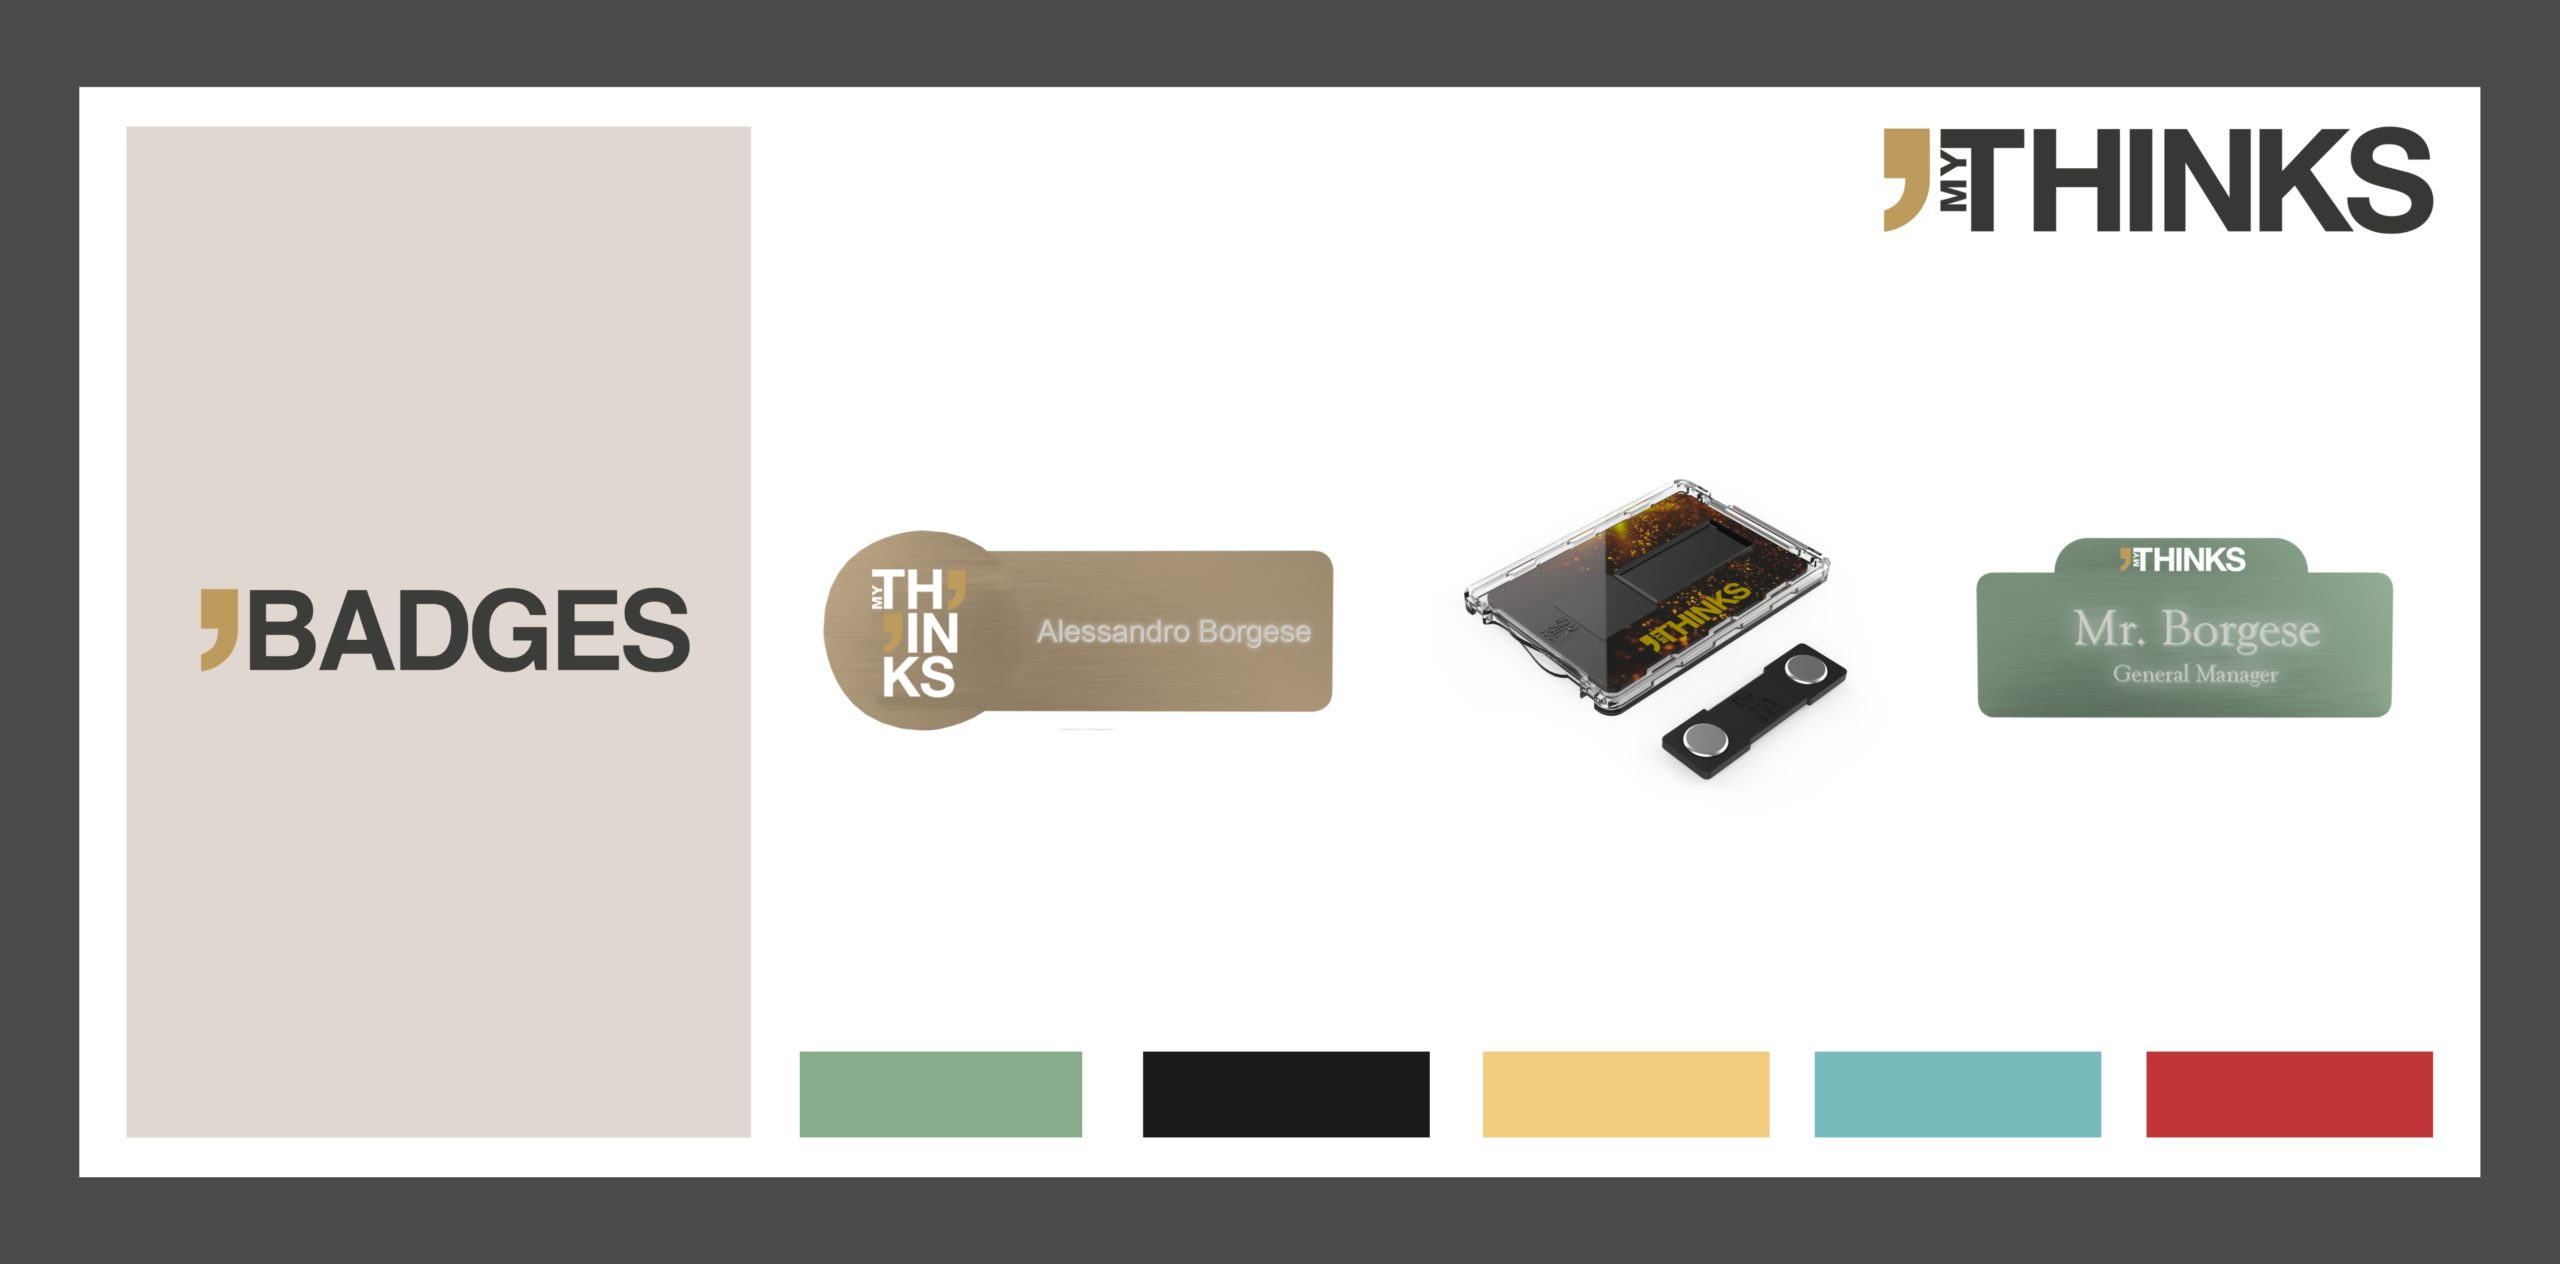 3 different name badge shapes from the Badges collection : rectangular with left round location for logo, rectangular with its packaging, rectangular with upper location for logo